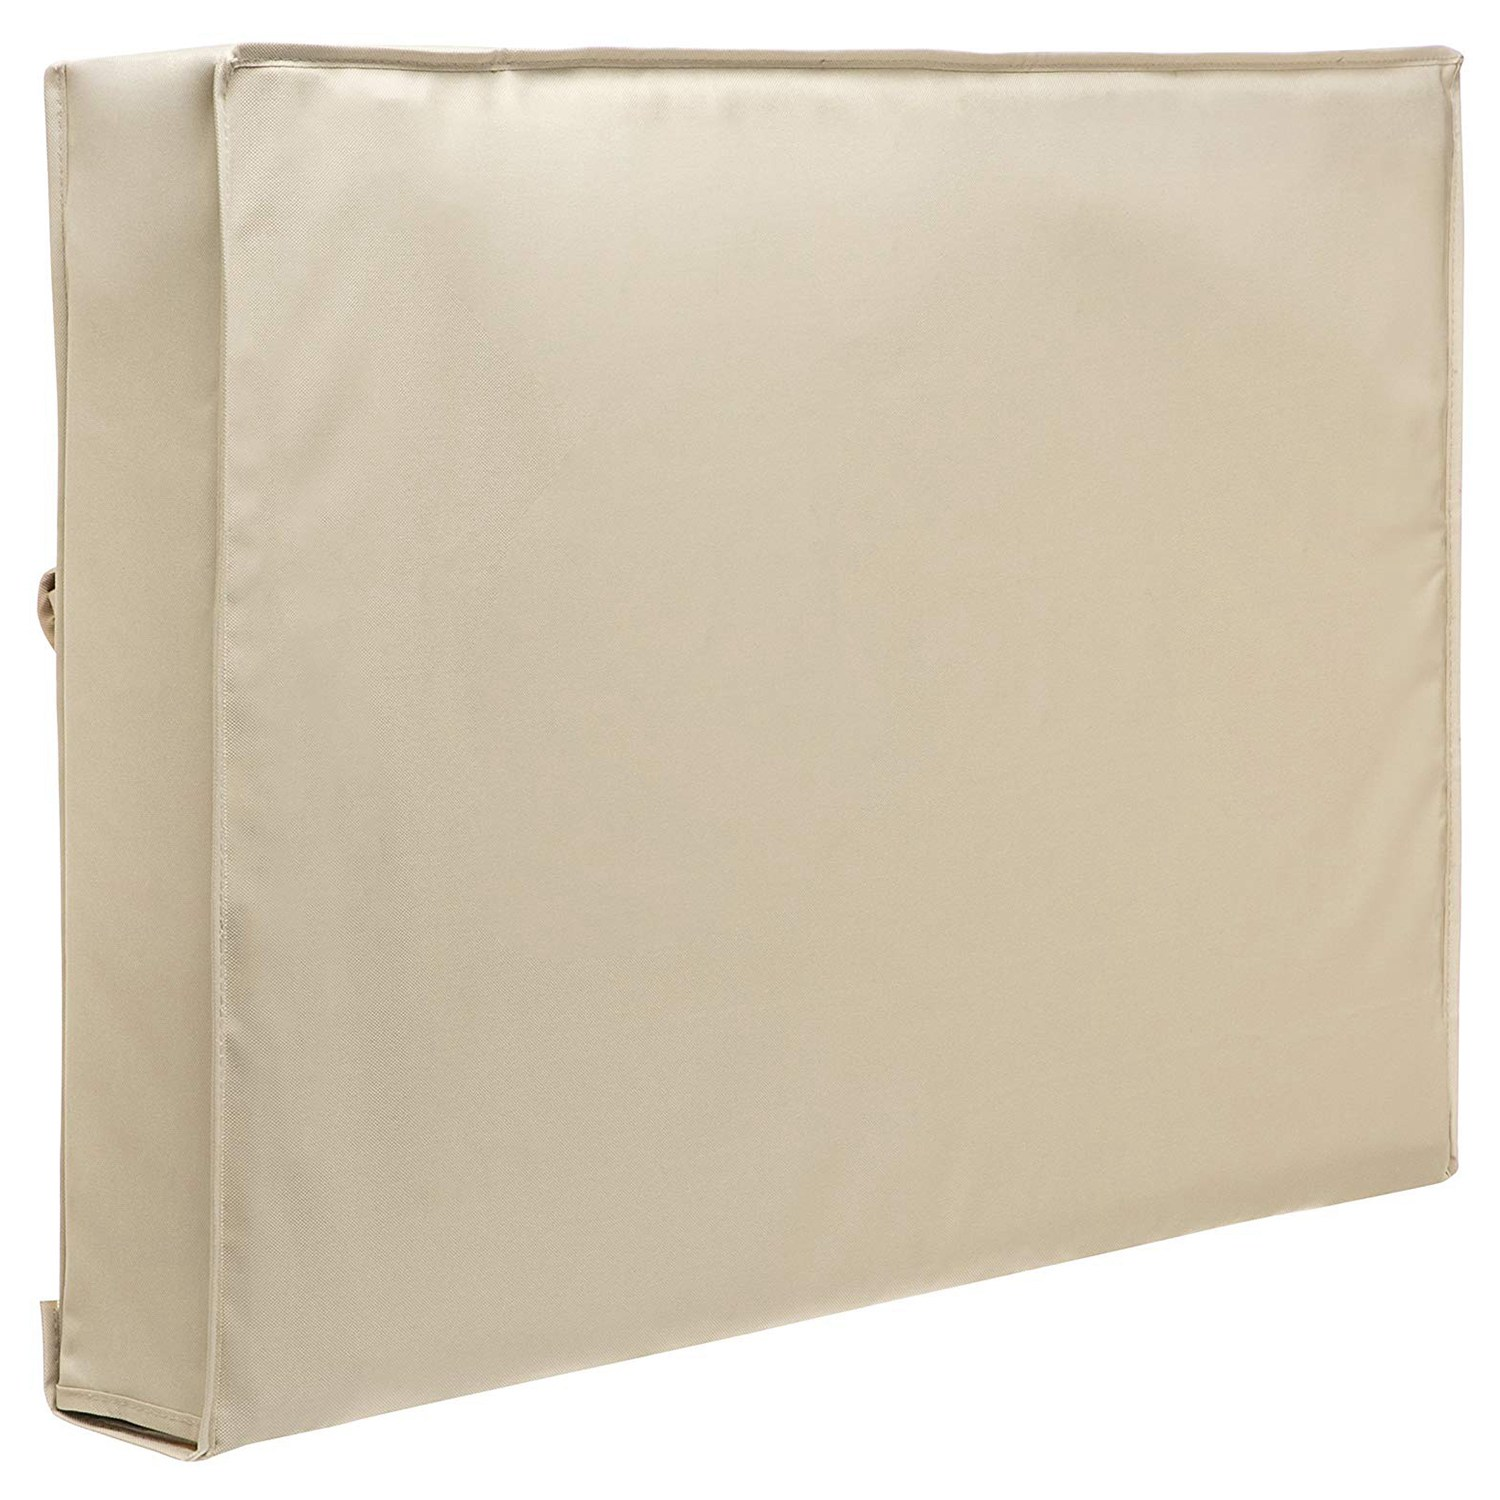 """Outdoor TV Cover Sizes 40/"""" to 75/"""" Weatherproof Protector for Flat Screen TVs"""